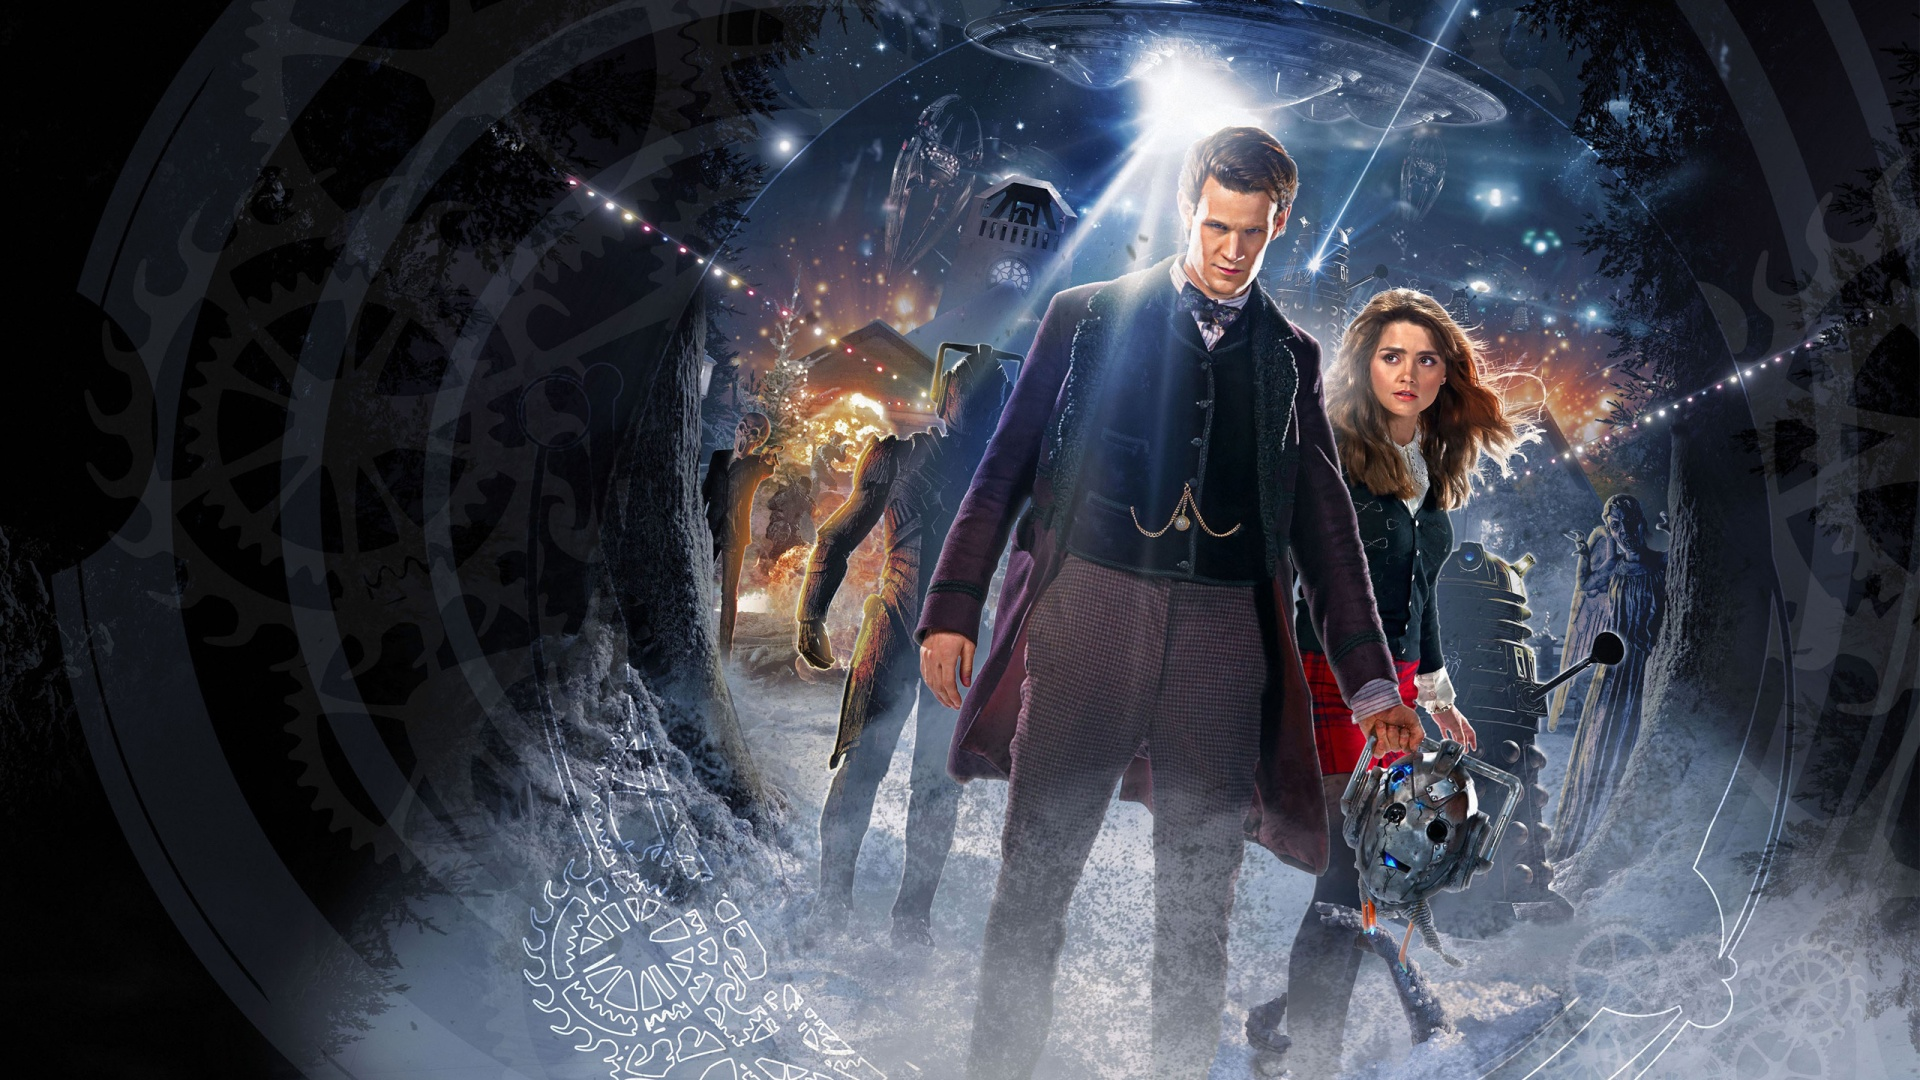 The Day Of The Doctor Wallpaper Doctor who time of the doctor 1920x1080